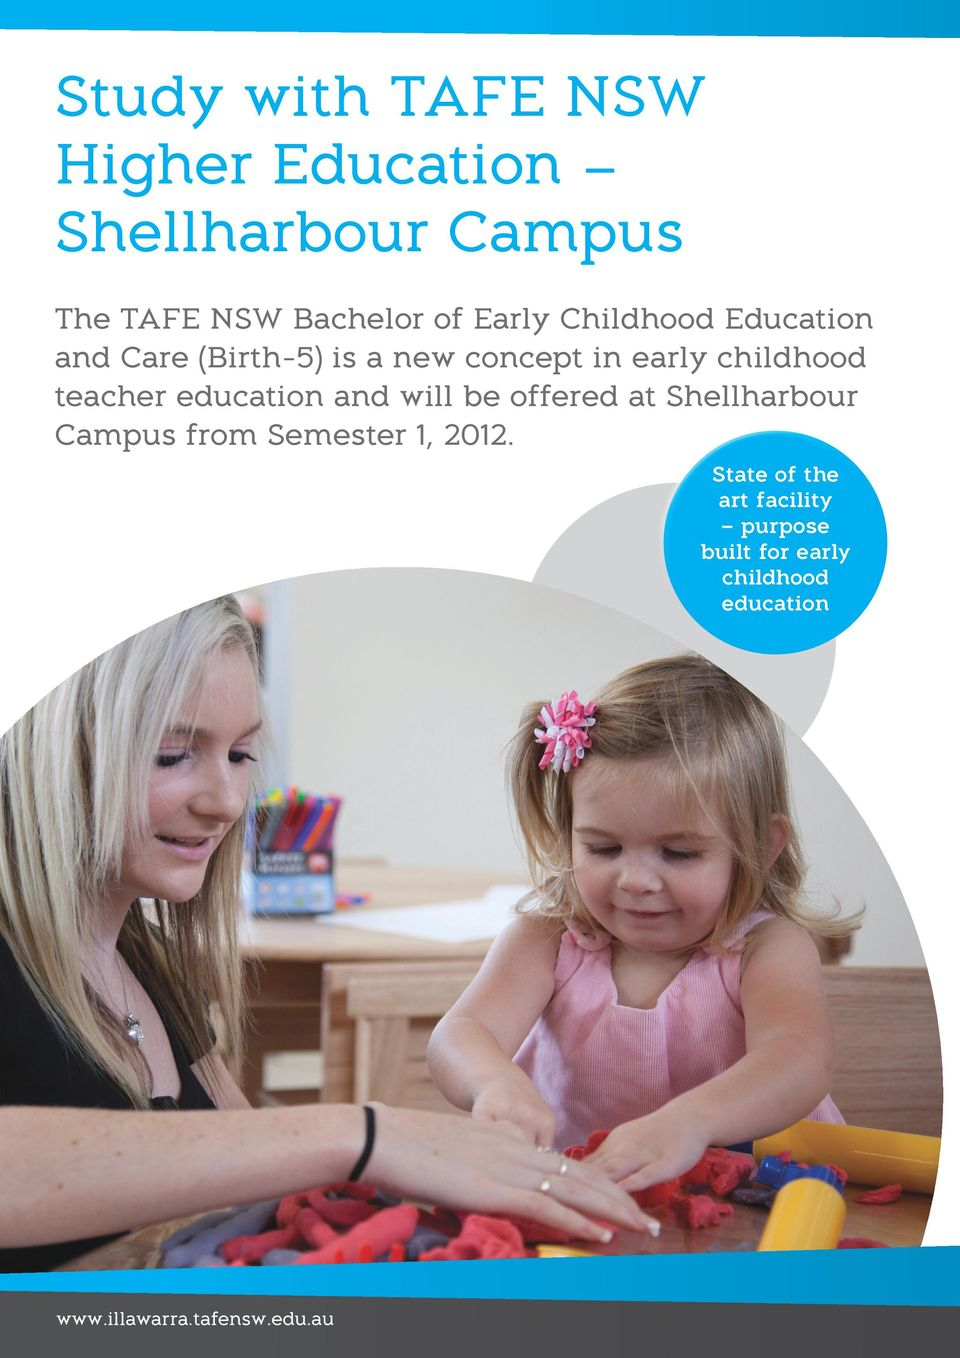 teacher education and will be offered at Shellharbour Campus from Semester 1, 2012.